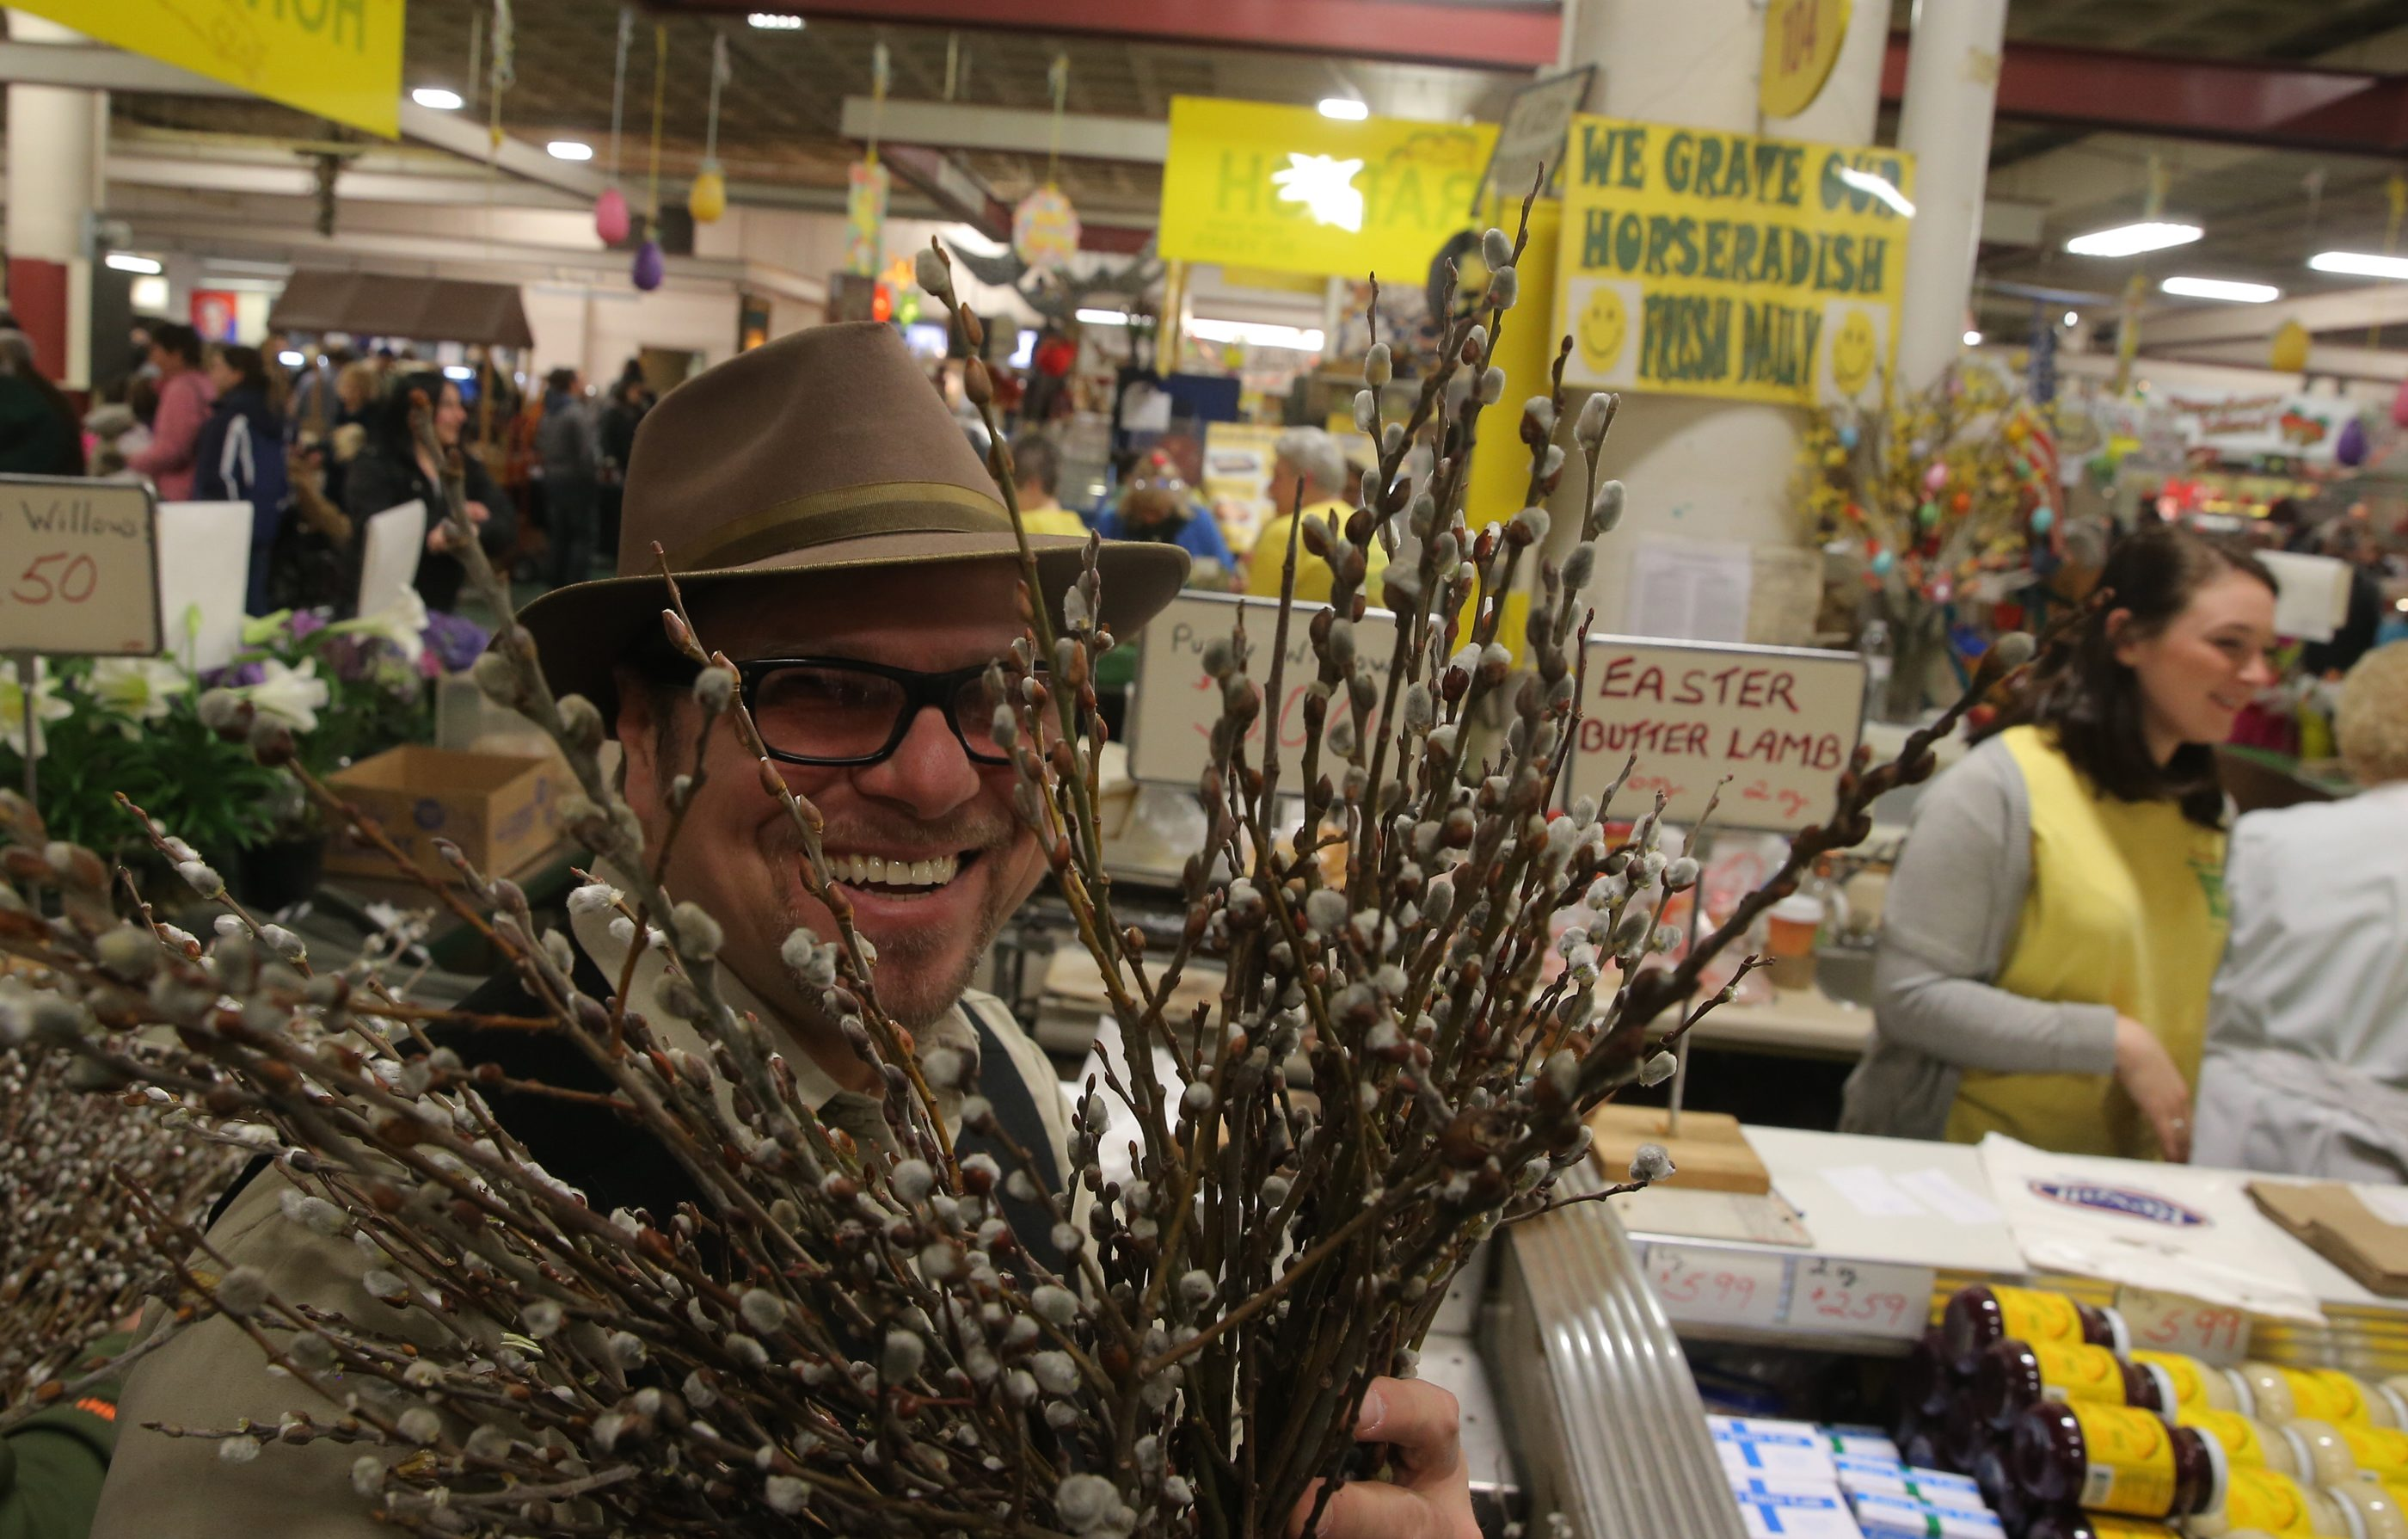 Airborne Eddy Dobosiewicz, photographed at the Broadway Market last week, will be part of a Ch. 7 Dyngus Day special as an independent  contributor, rather than an employee. (John Hickey/Buffalo News)